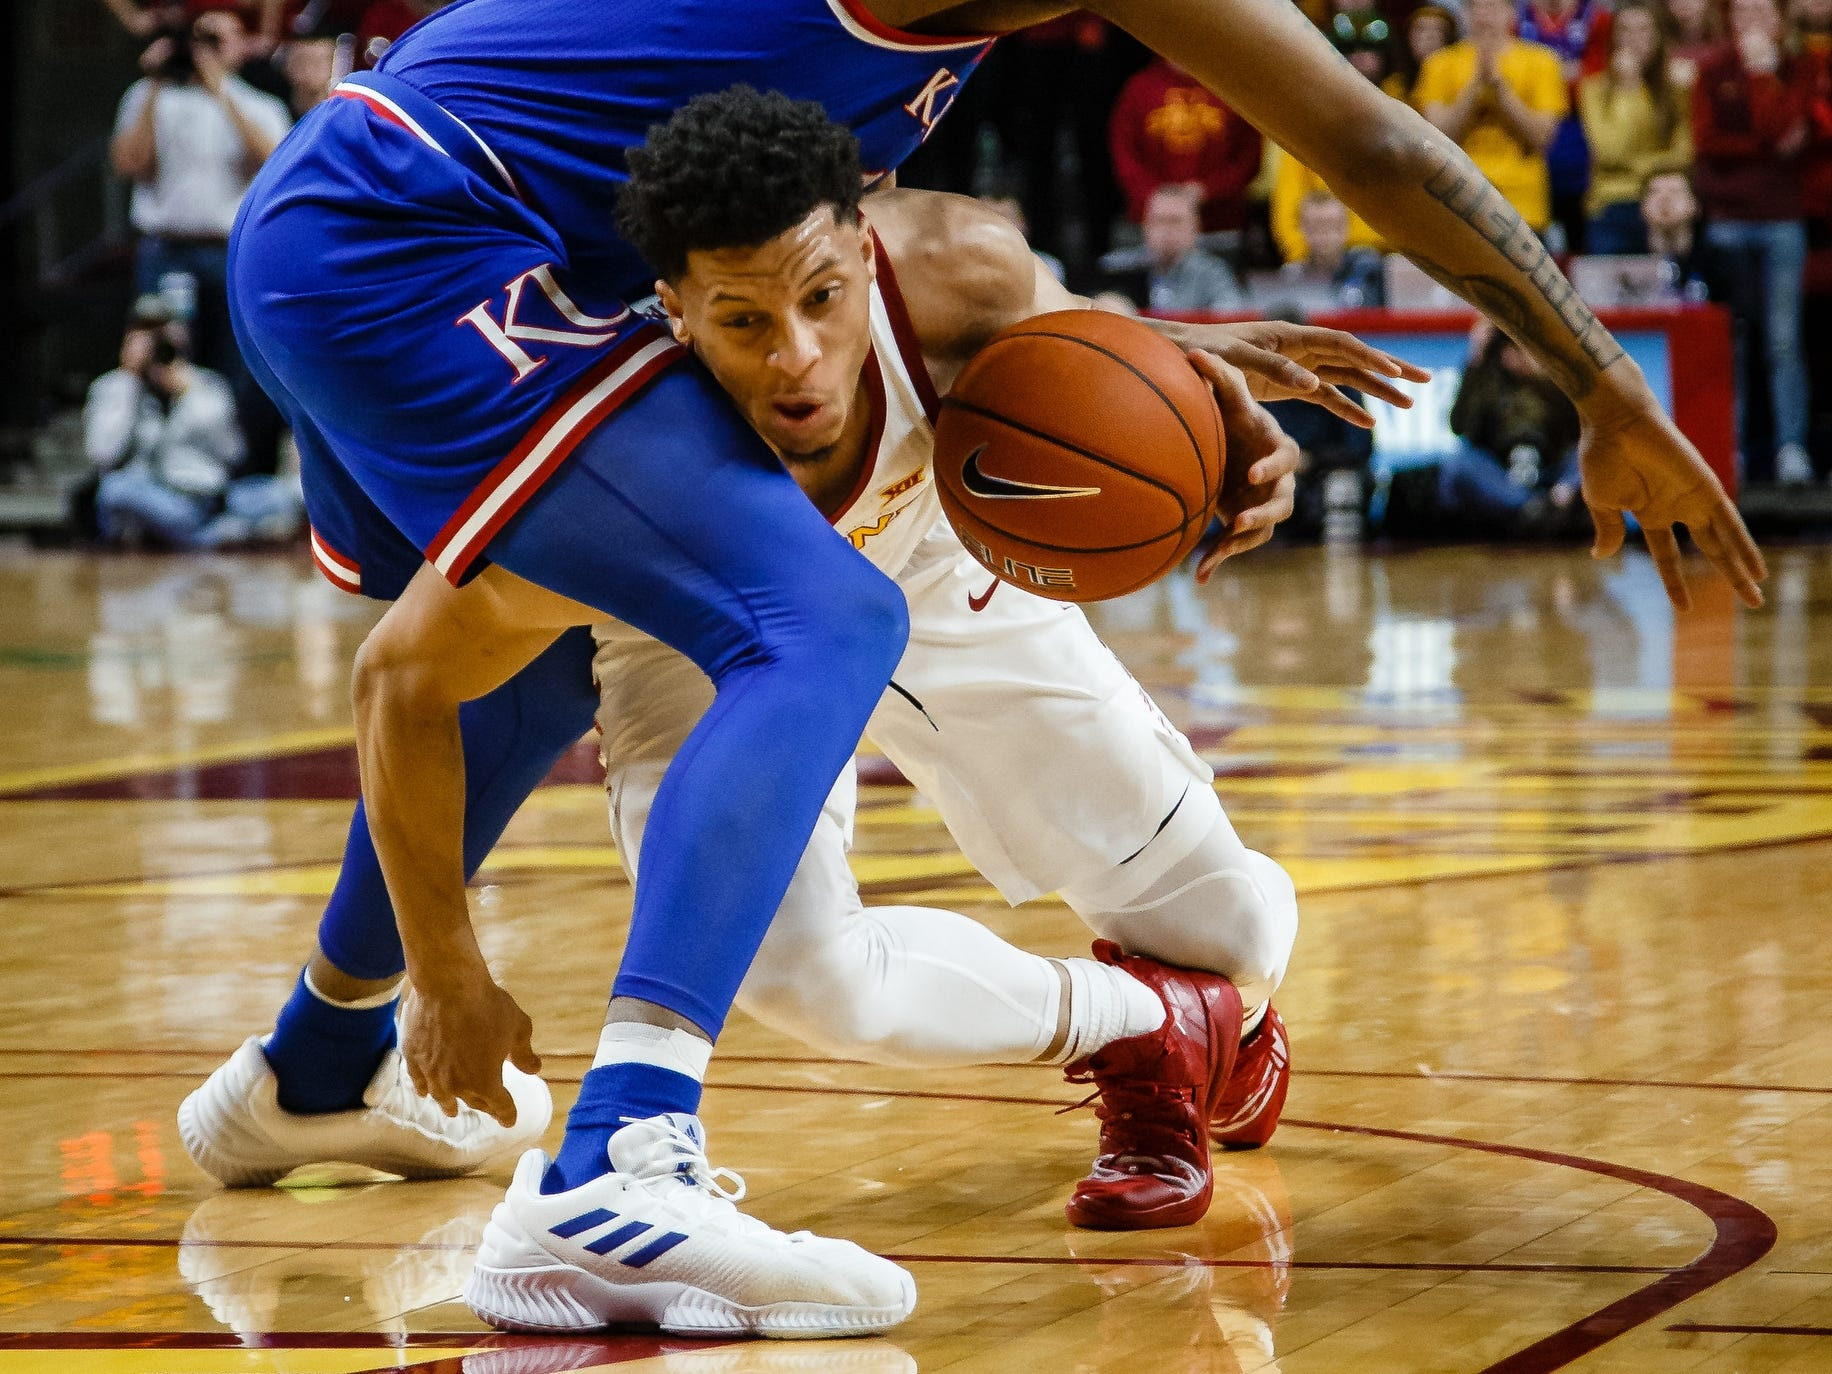 Iowa State's Lindell Wigginton (5) tries to get around Kansas' K.J. Lawson (13) during the second half of their basketball game on Saturday, Jan. 5, 2019, in Ames. Iowa State would go on to beat Kansas 77-60.